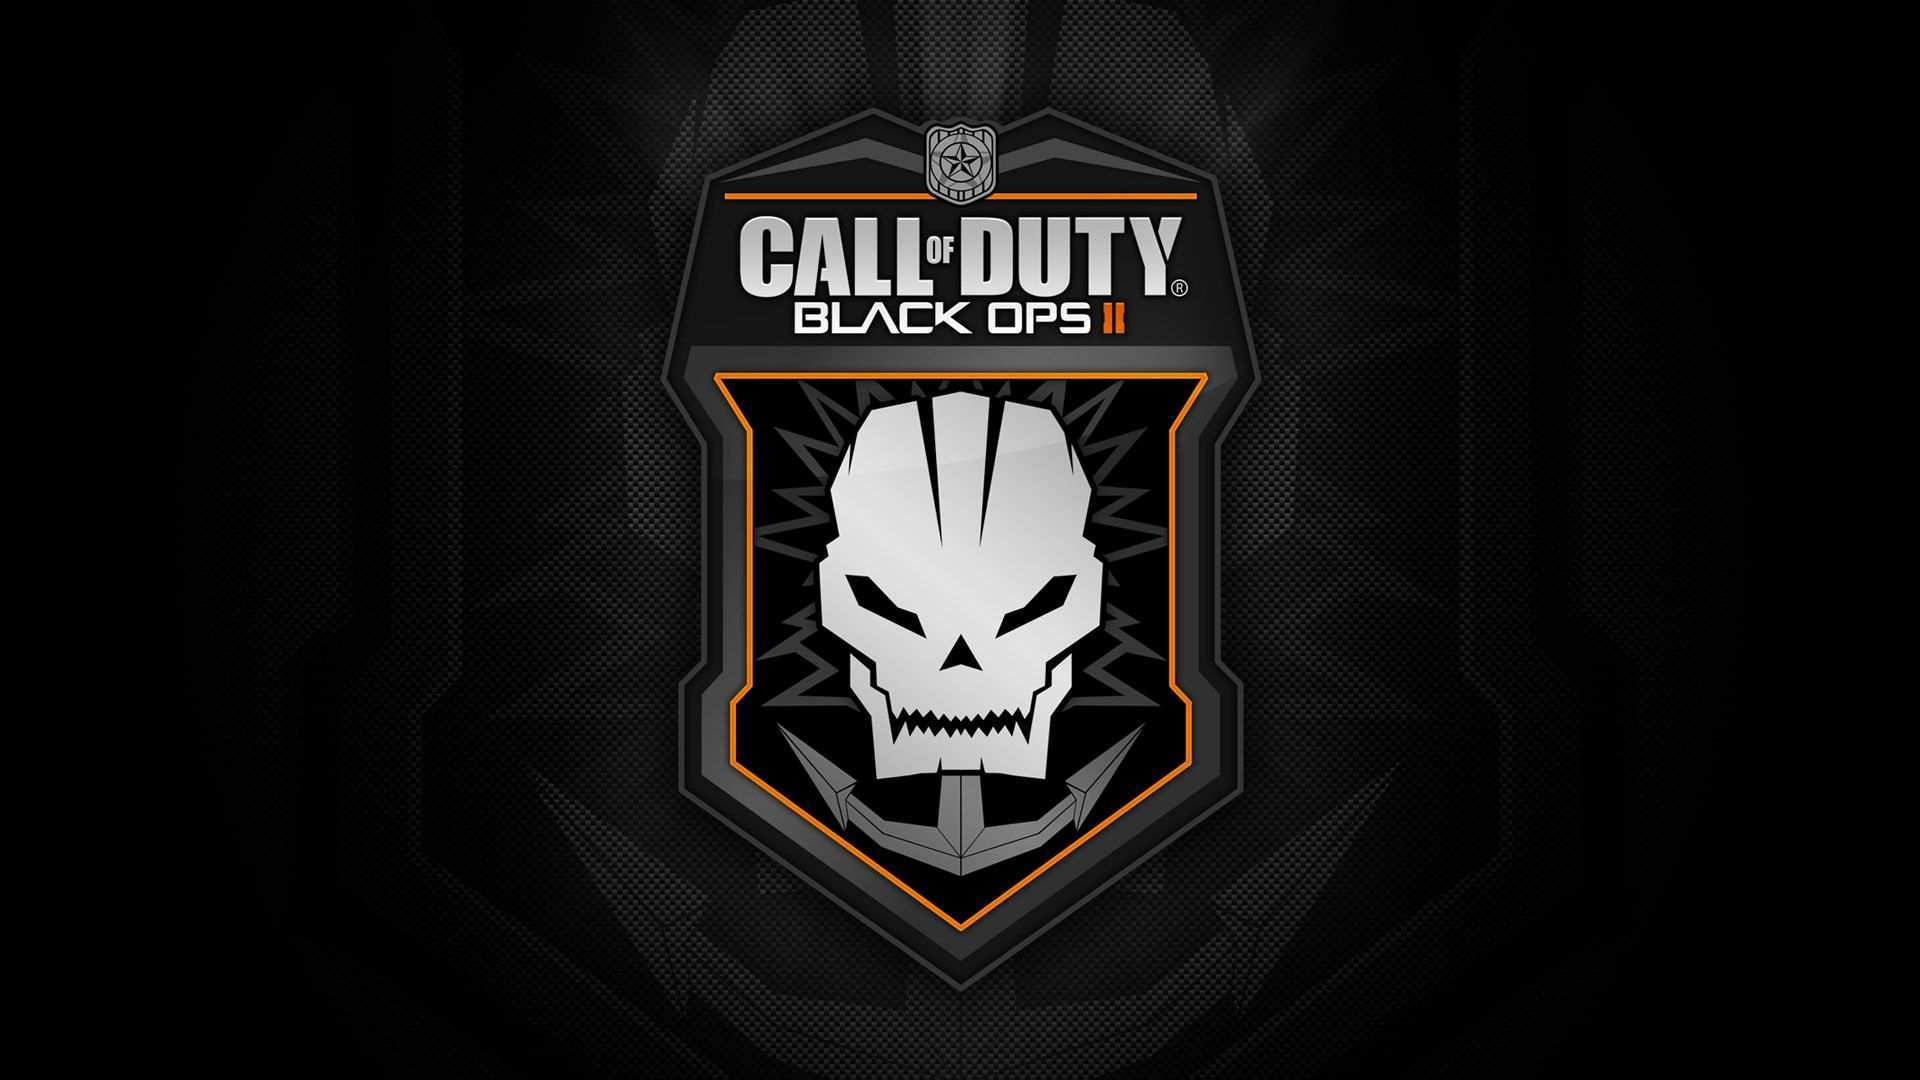 Call Of Duty Black Ops 2 Logo Wallpaper Wallpaperlepi Call Of Duty Black Call Of Duty Black Ops Iii Call Of Duty